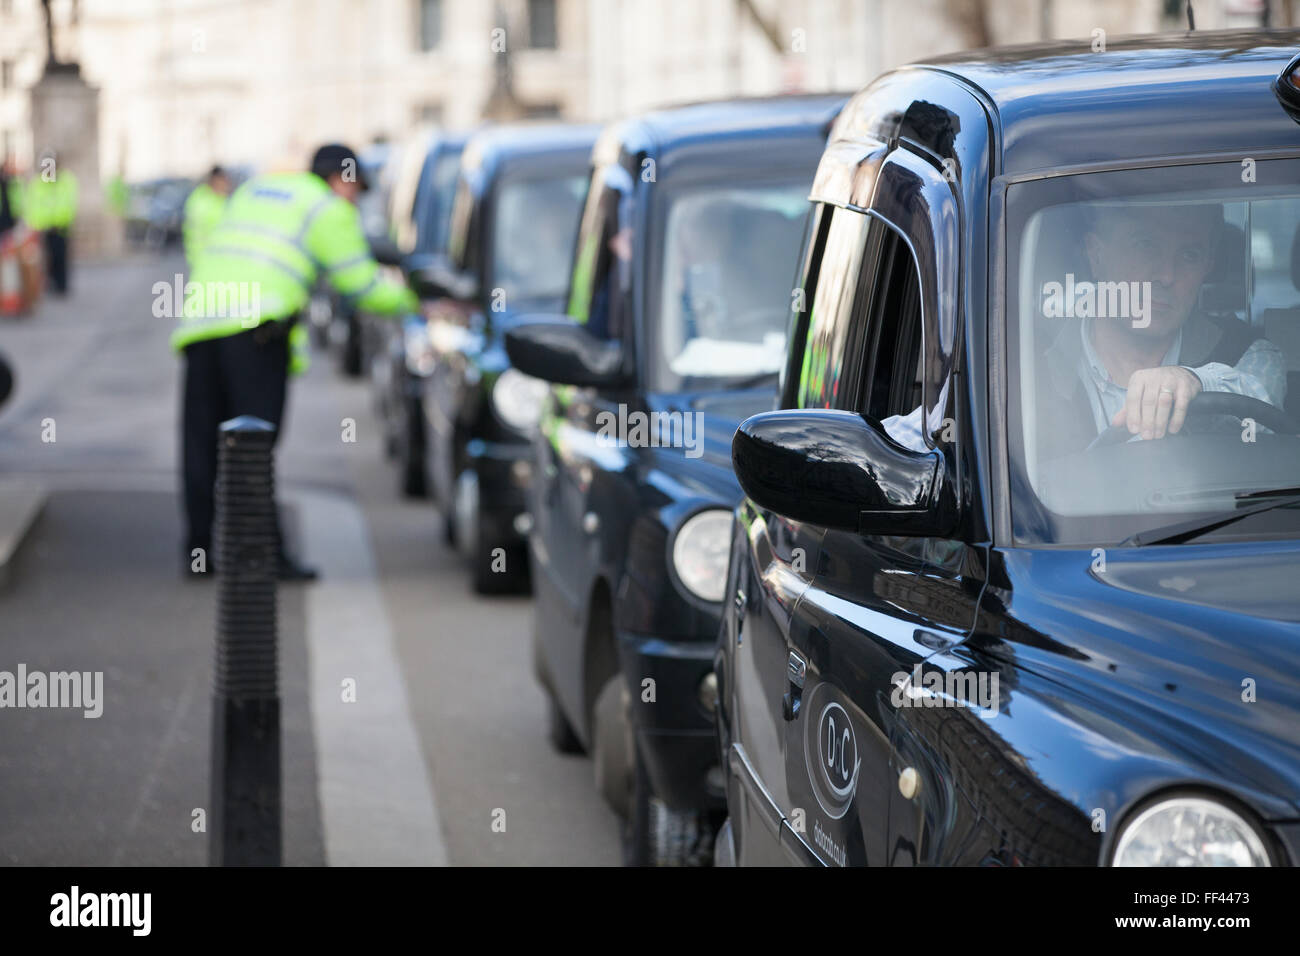 London, UK. 10th February 2016. Black cab taxi drivers hold a go-slow protest in Whitehall in protest against lack Stock Photo